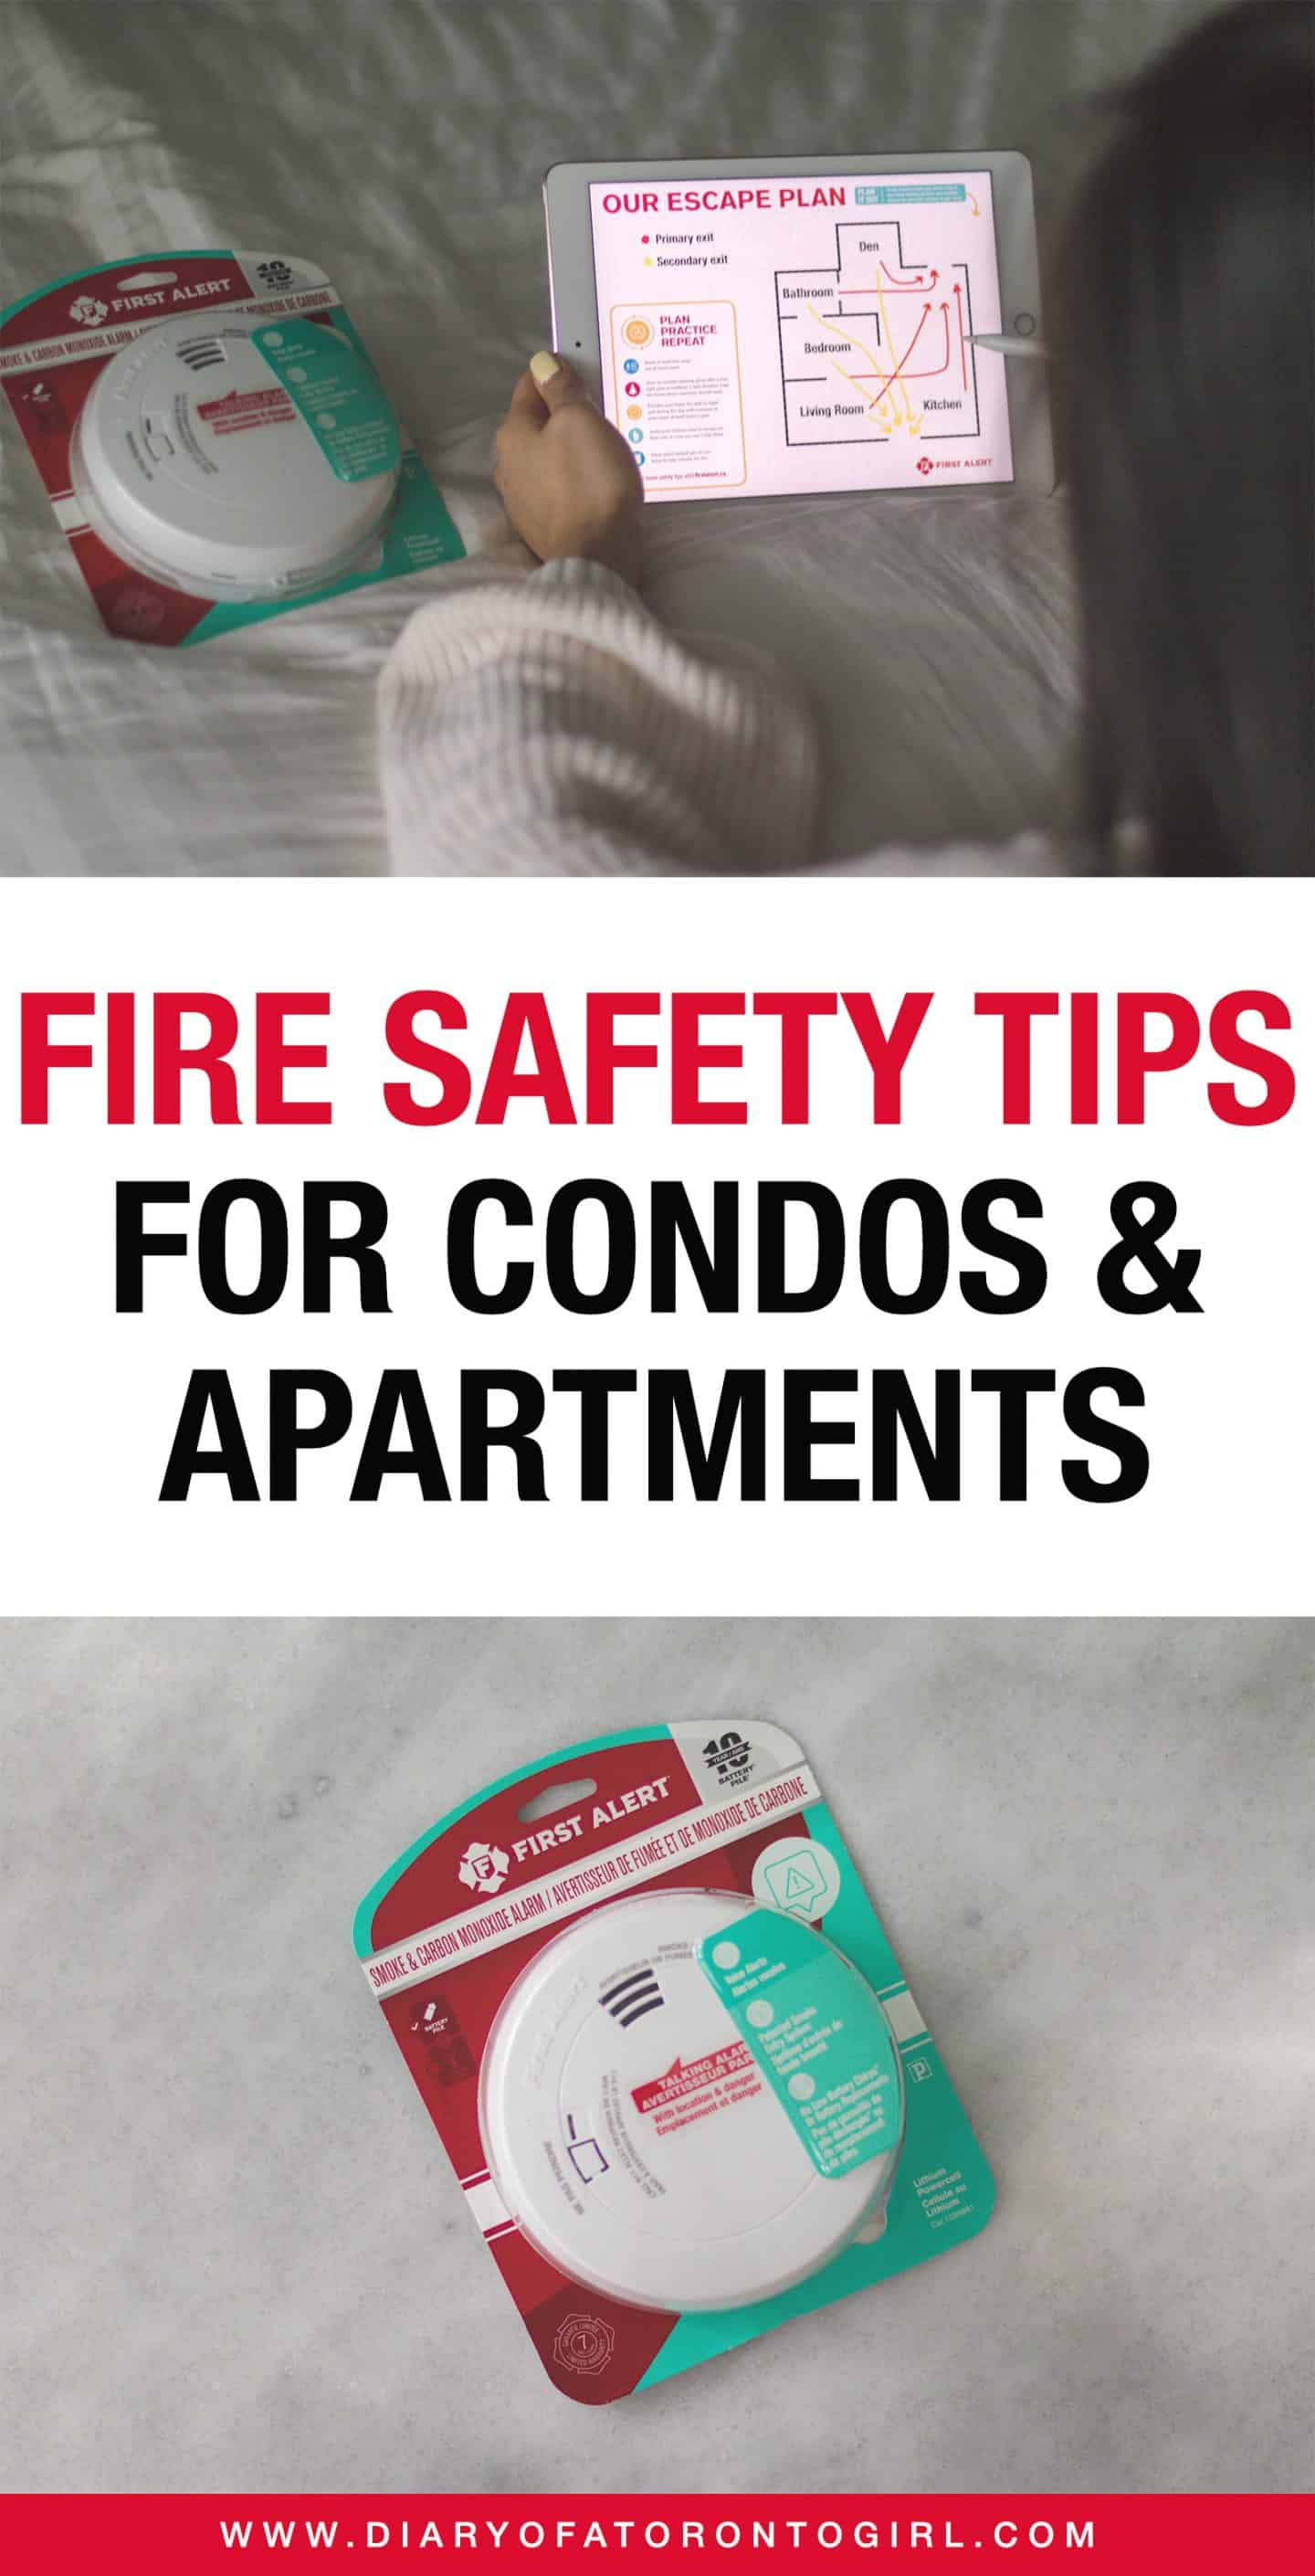 Living in a condo or apartment? Here are fire safety tips to help keep you and your family safe at home!